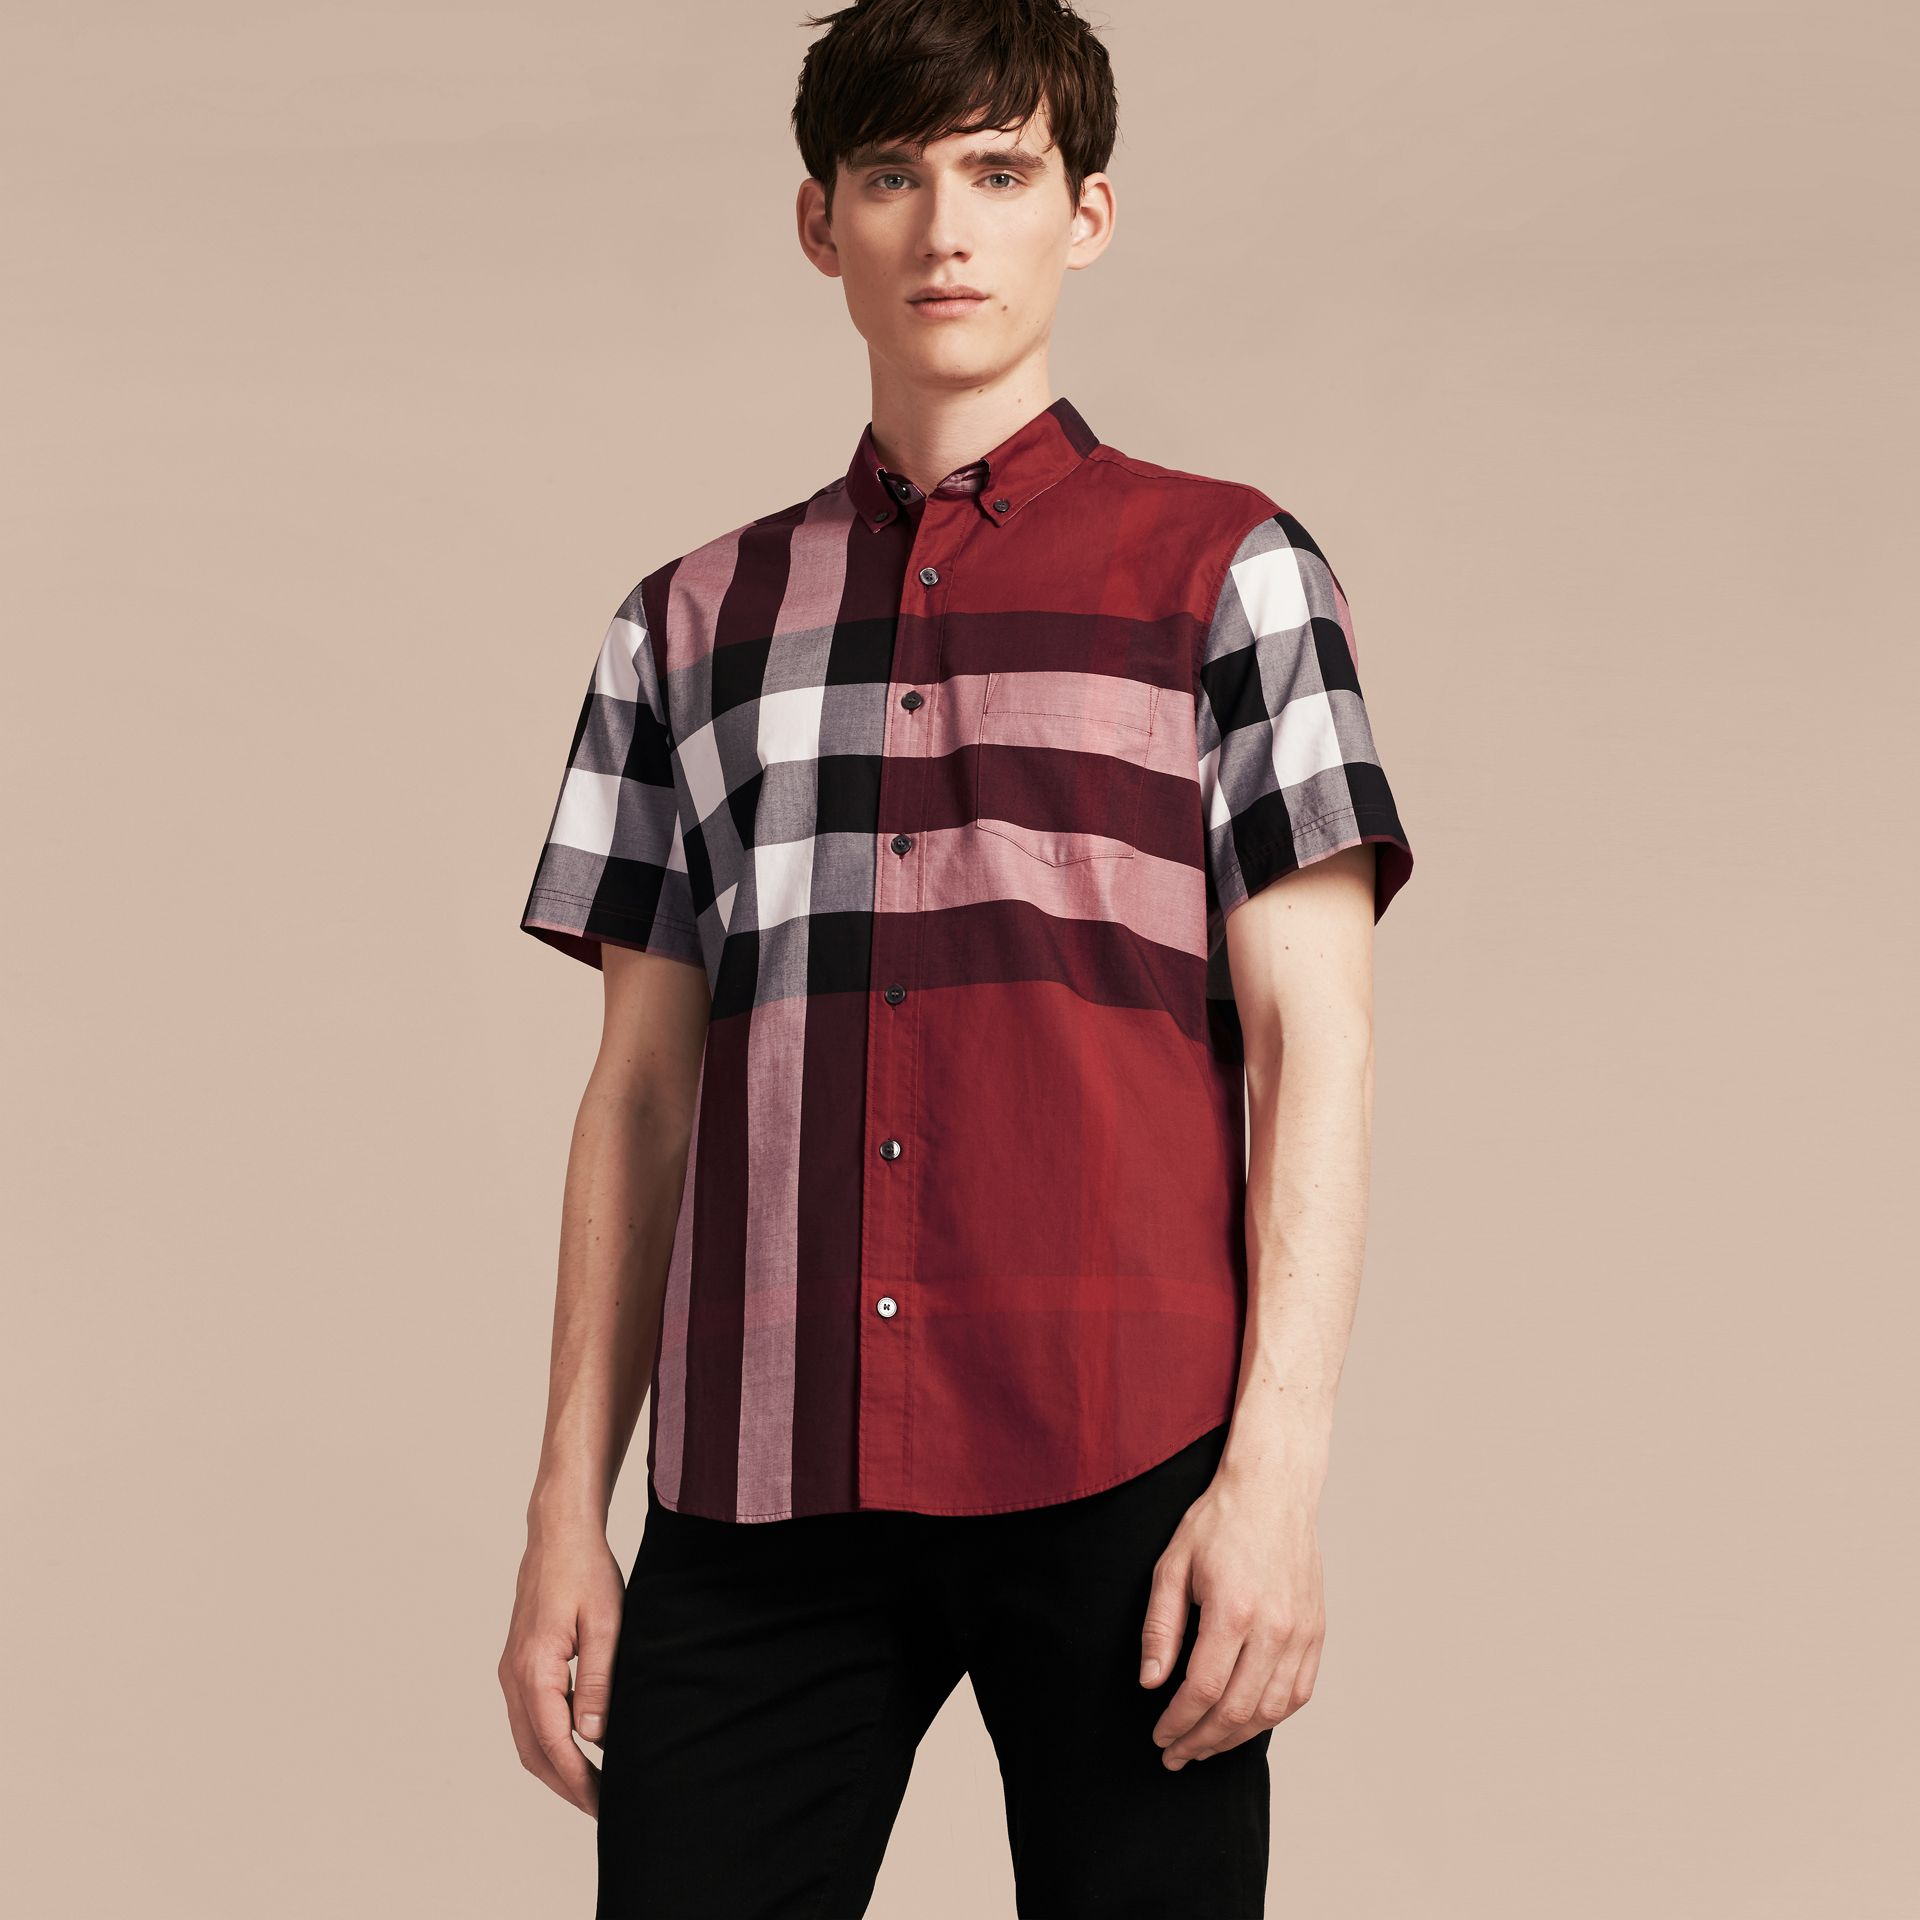 Berry red Short-sleeved Check Cotton Shirt Berry Red - gallery image 6